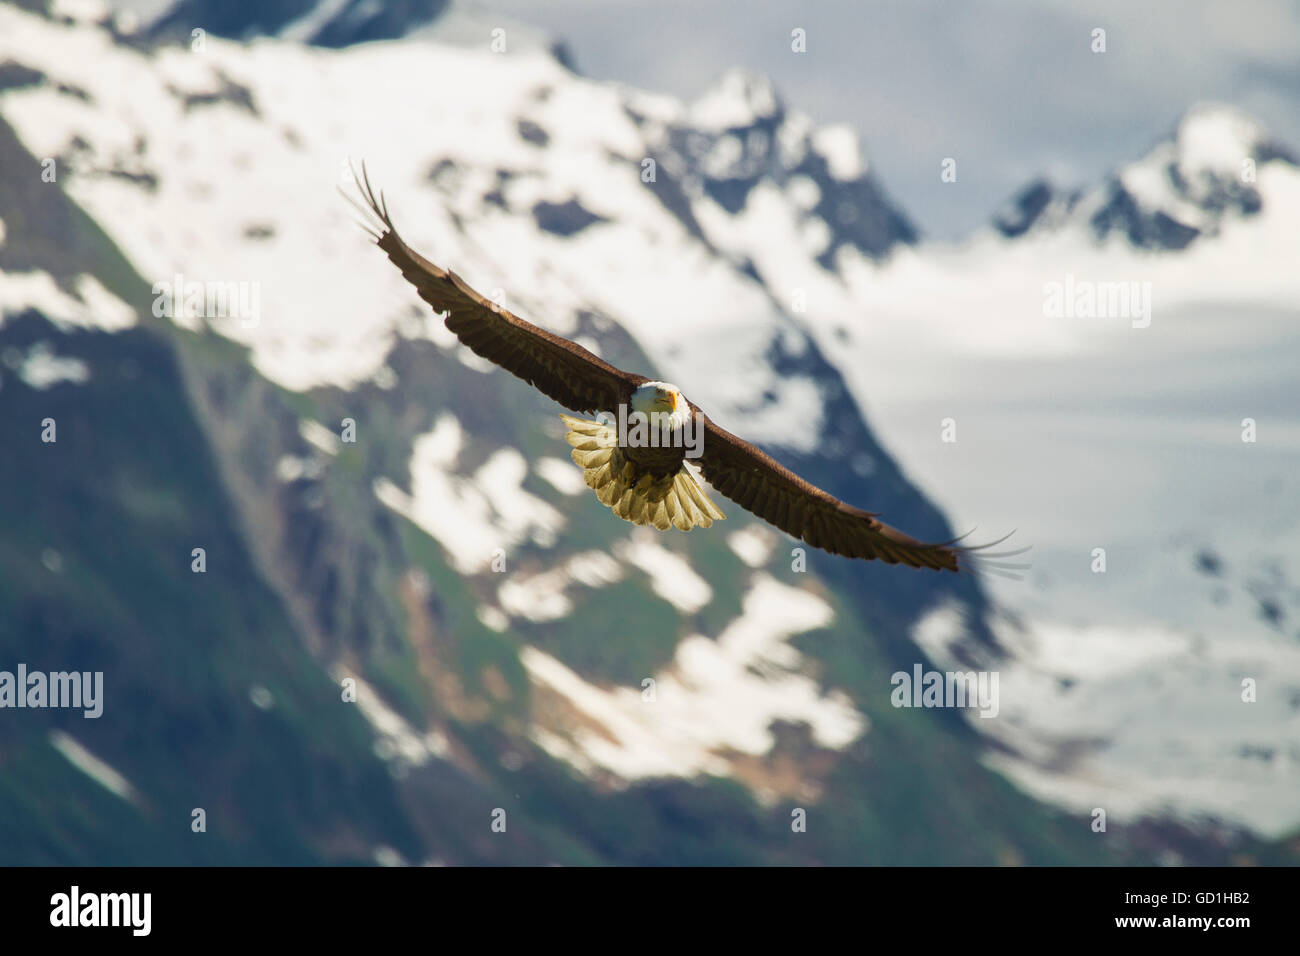 A bald eagle (Haliaeetus leucocephalus) soars in front of the Chugach Mountains near Valdez; Alaska, United States Stock Photo